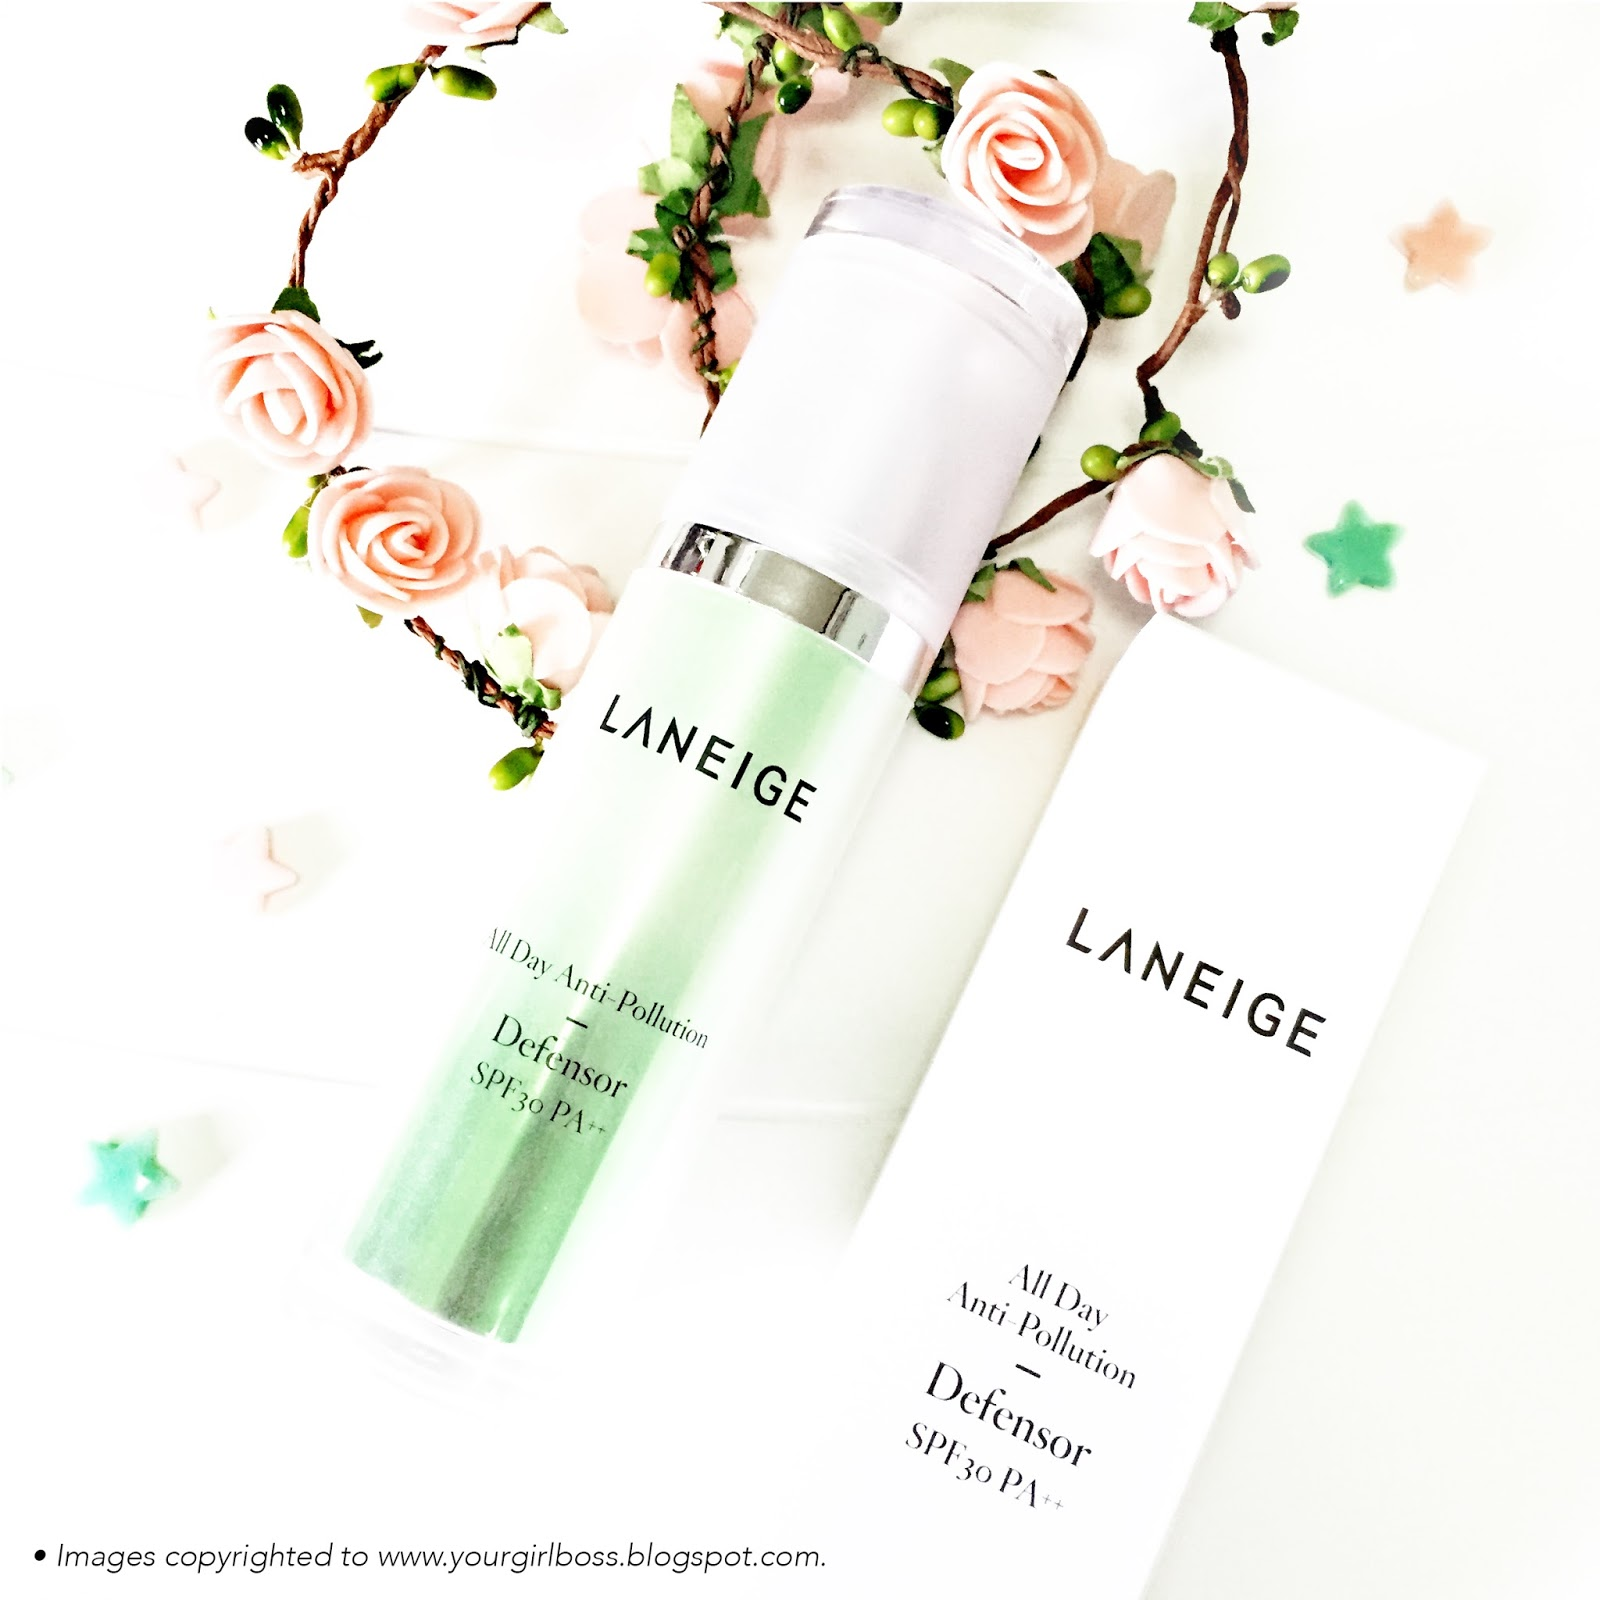 laneige all day anti pollution defensor review jean kuah 39 s beauty blog. Black Bedroom Furniture Sets. Home Design Ideas